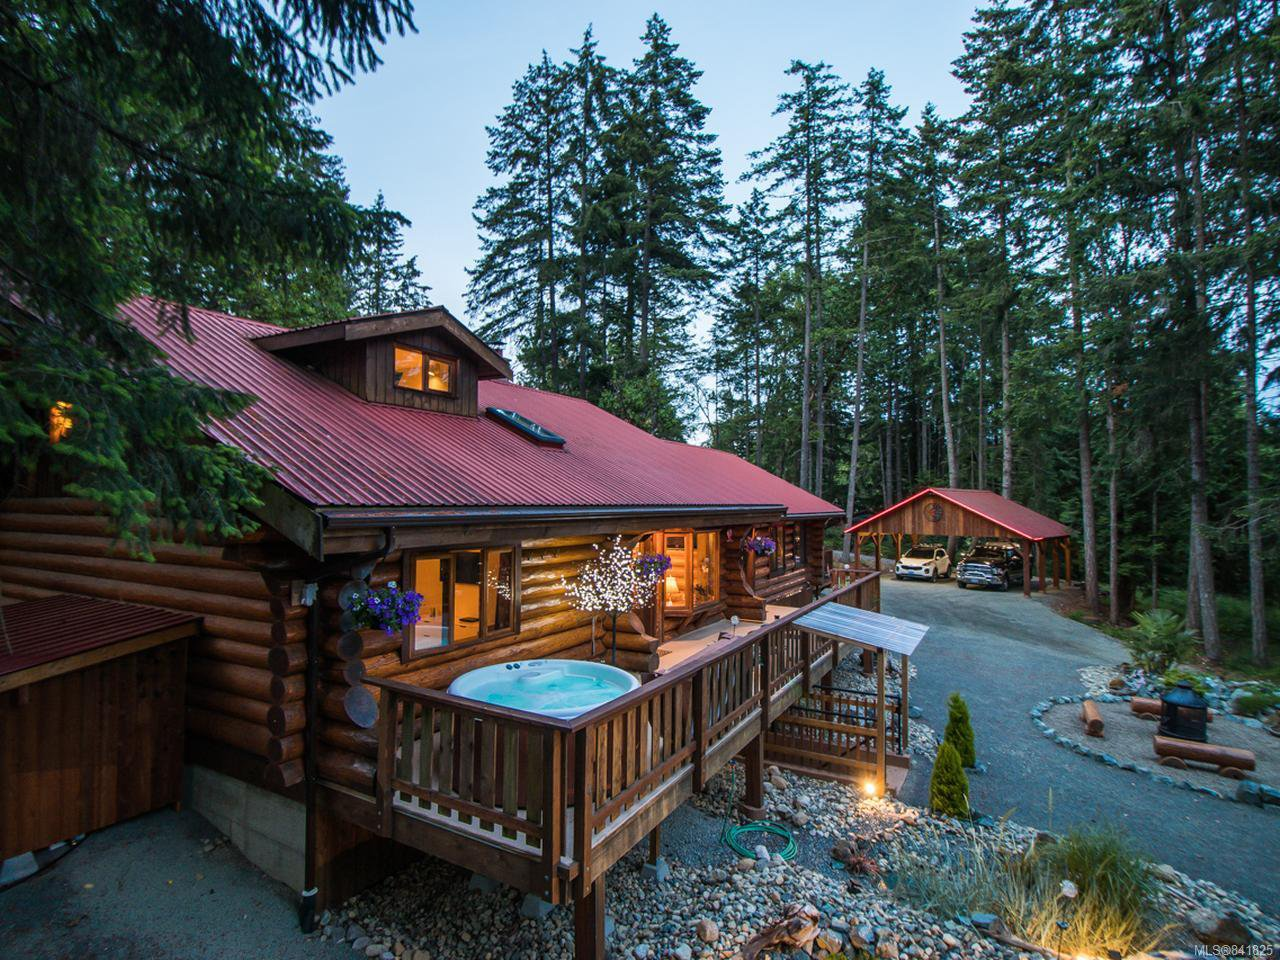 Main Photo: 7147 Aulds Rd in LANTZVILLE: Na Upper Lantzville House for sale (Nanaimo)  : MLS®# 841825